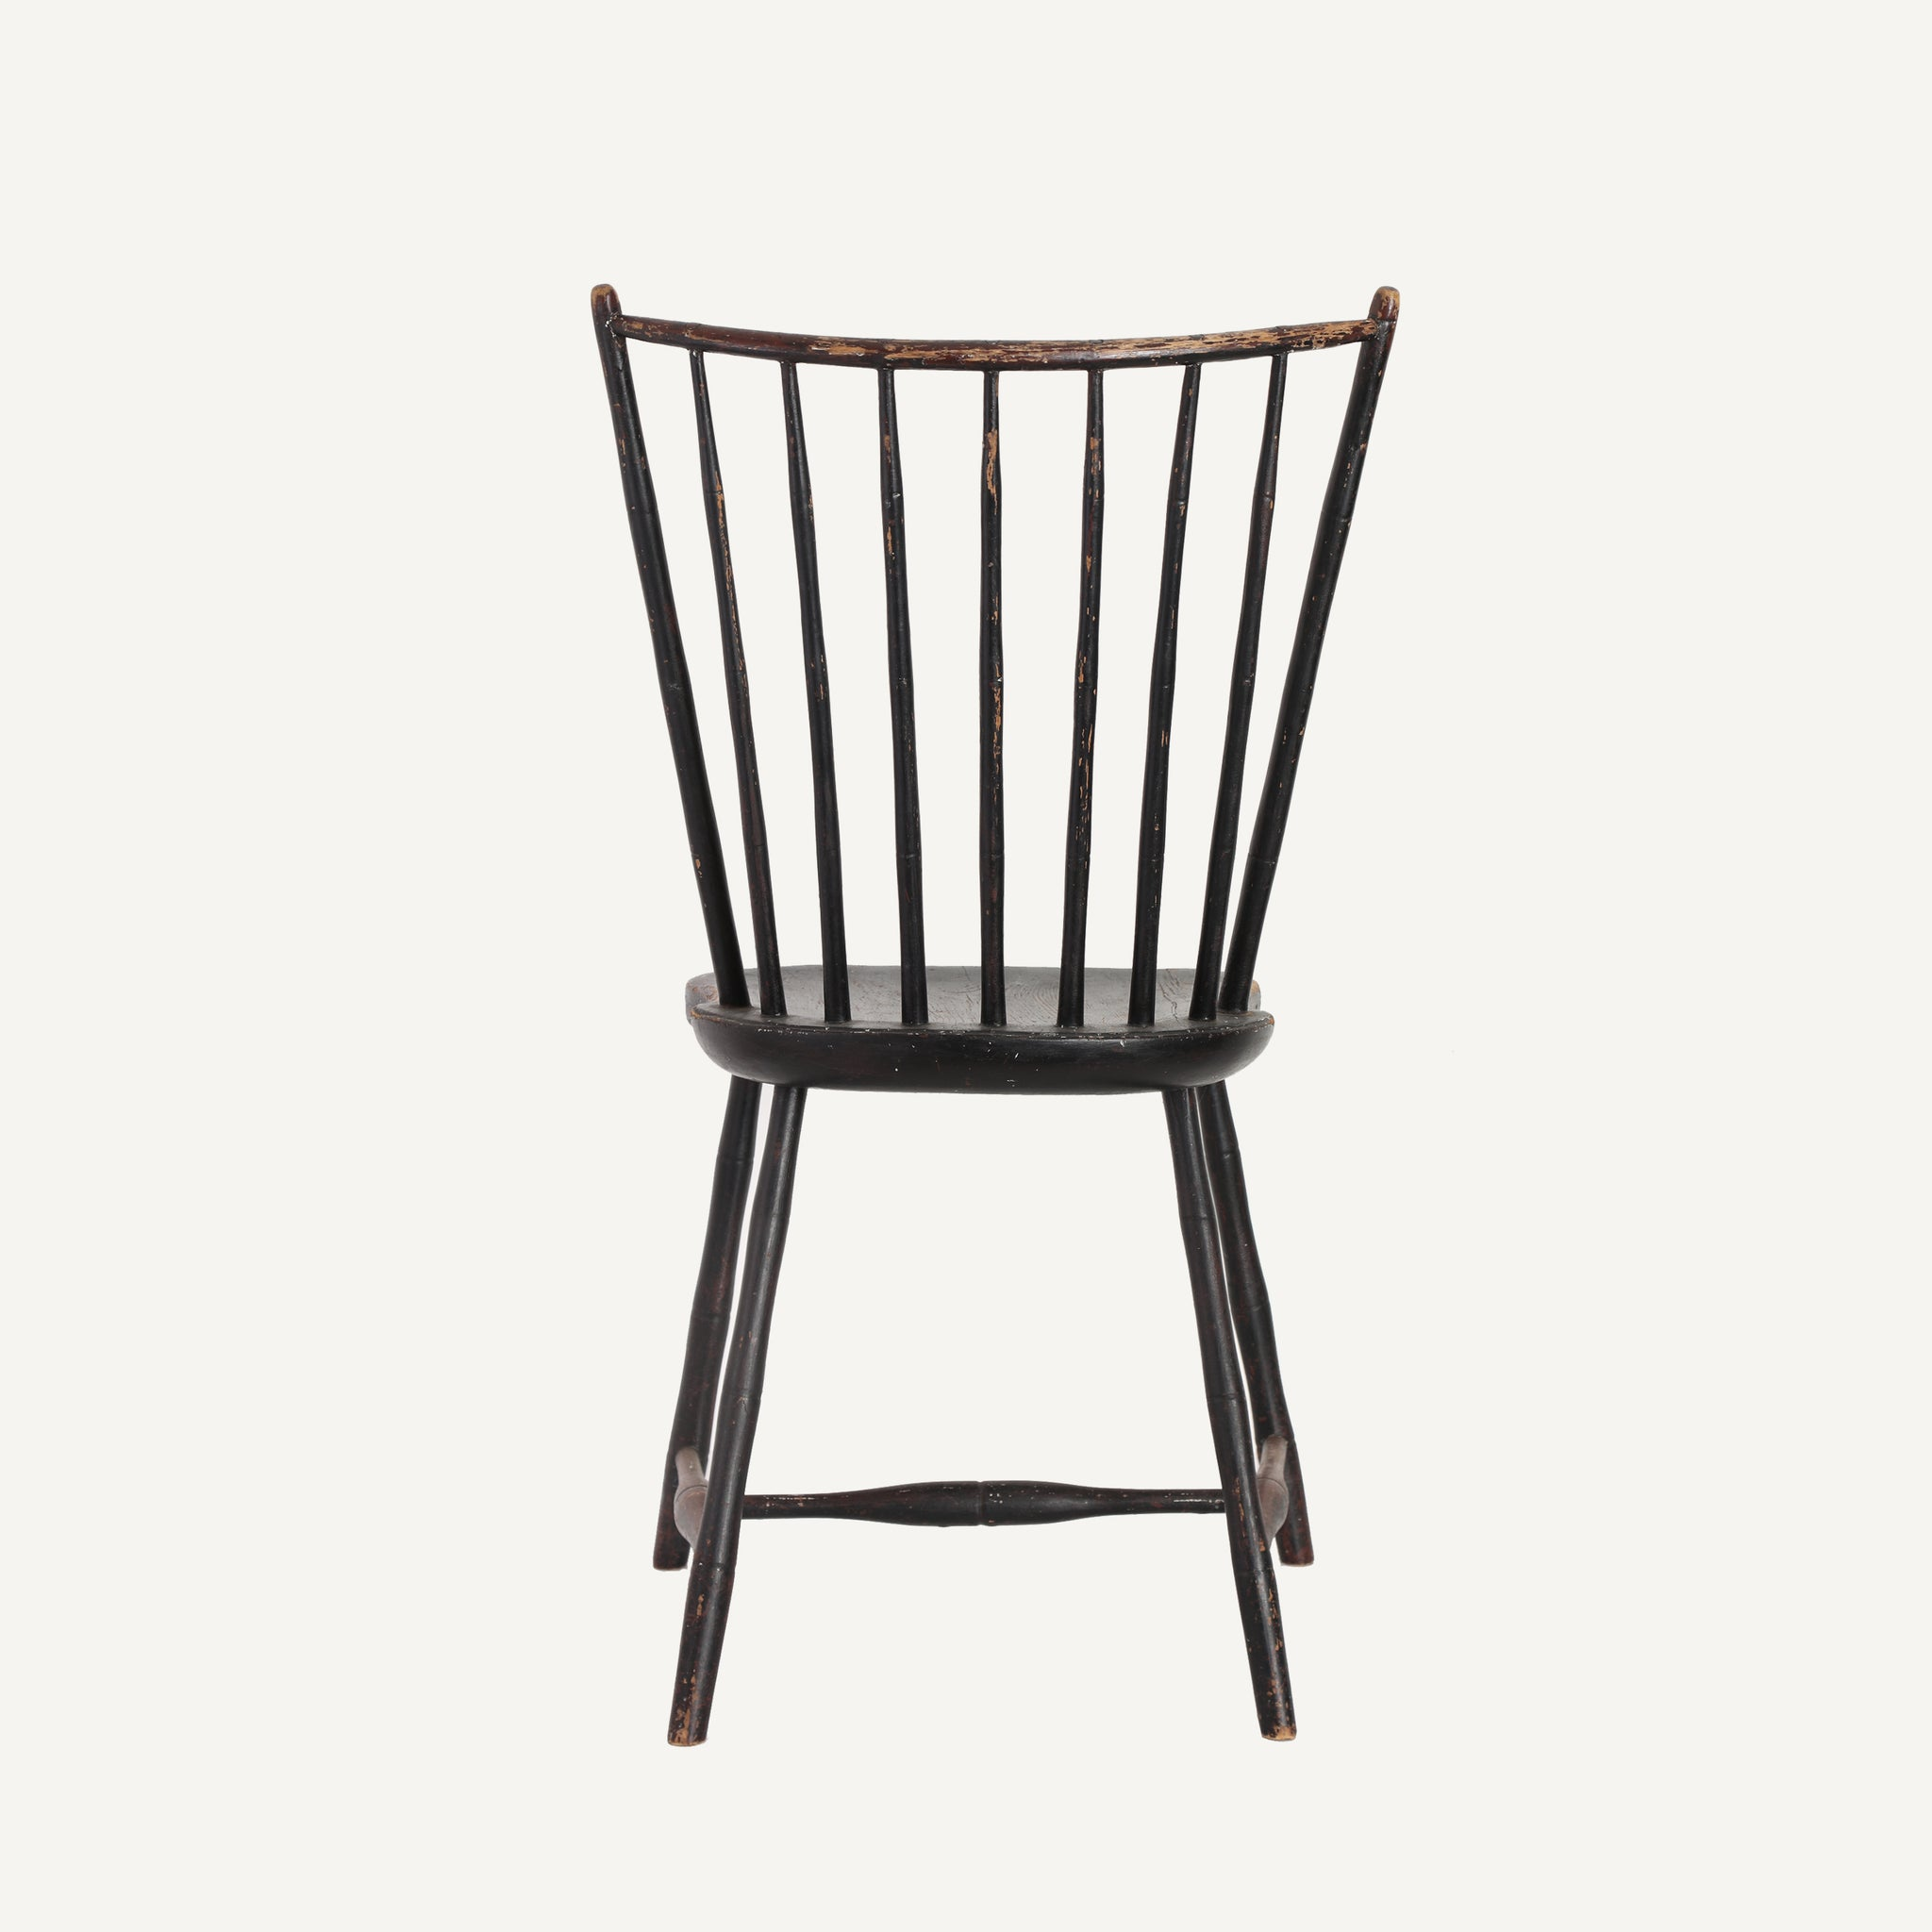 ANTIQUE FAUX BAMBOO WINDSOR CHAIR